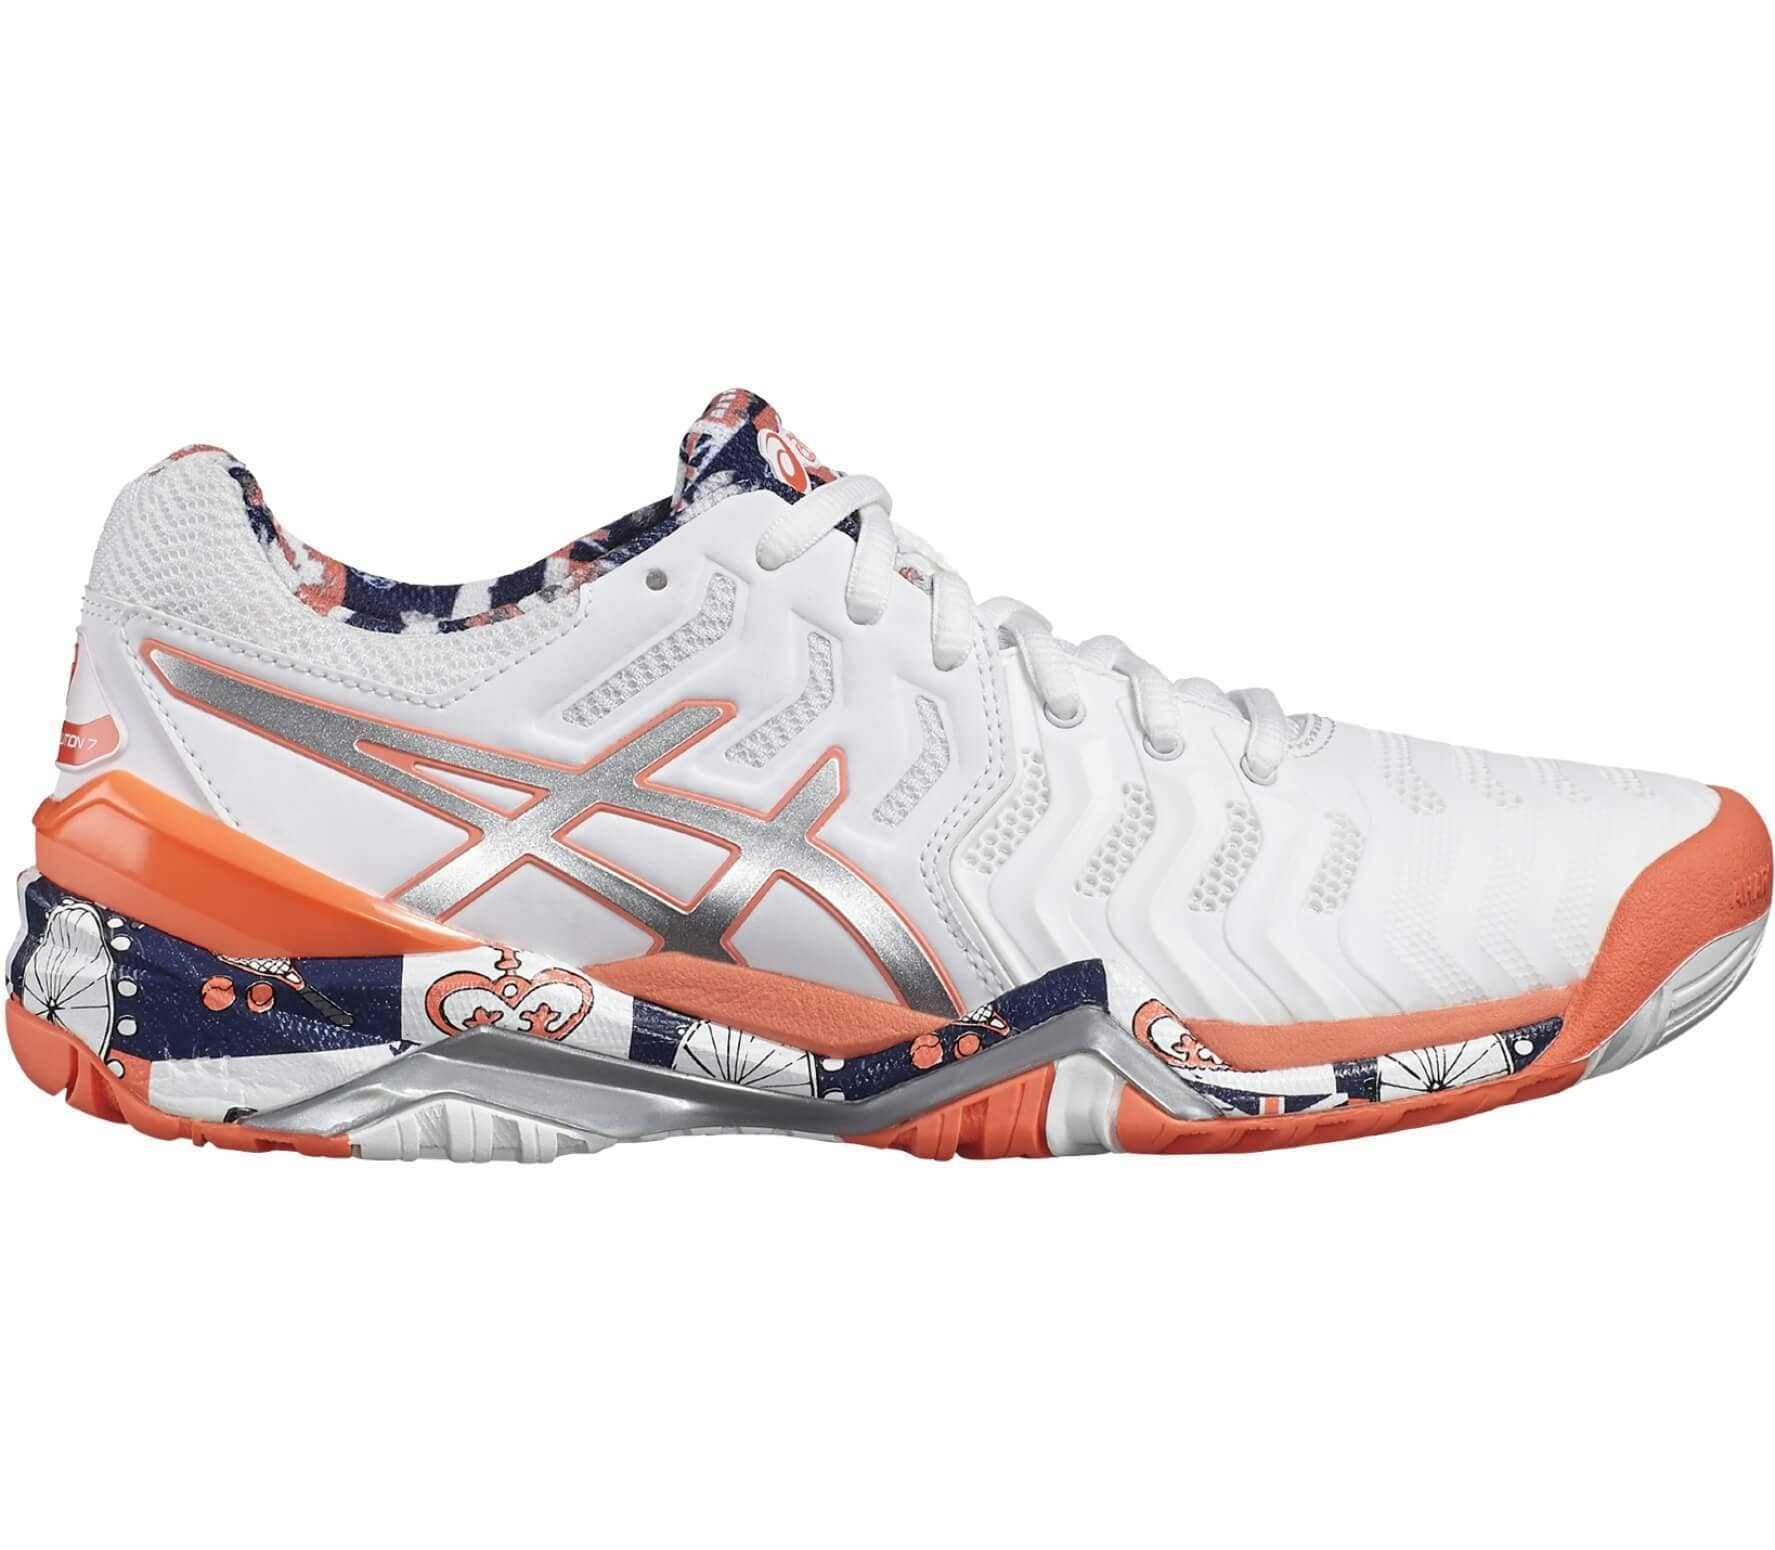 7652ae1f2f5e Asics - Gel-Resolution 7 L.E. London women s tennis shoes (white grey)